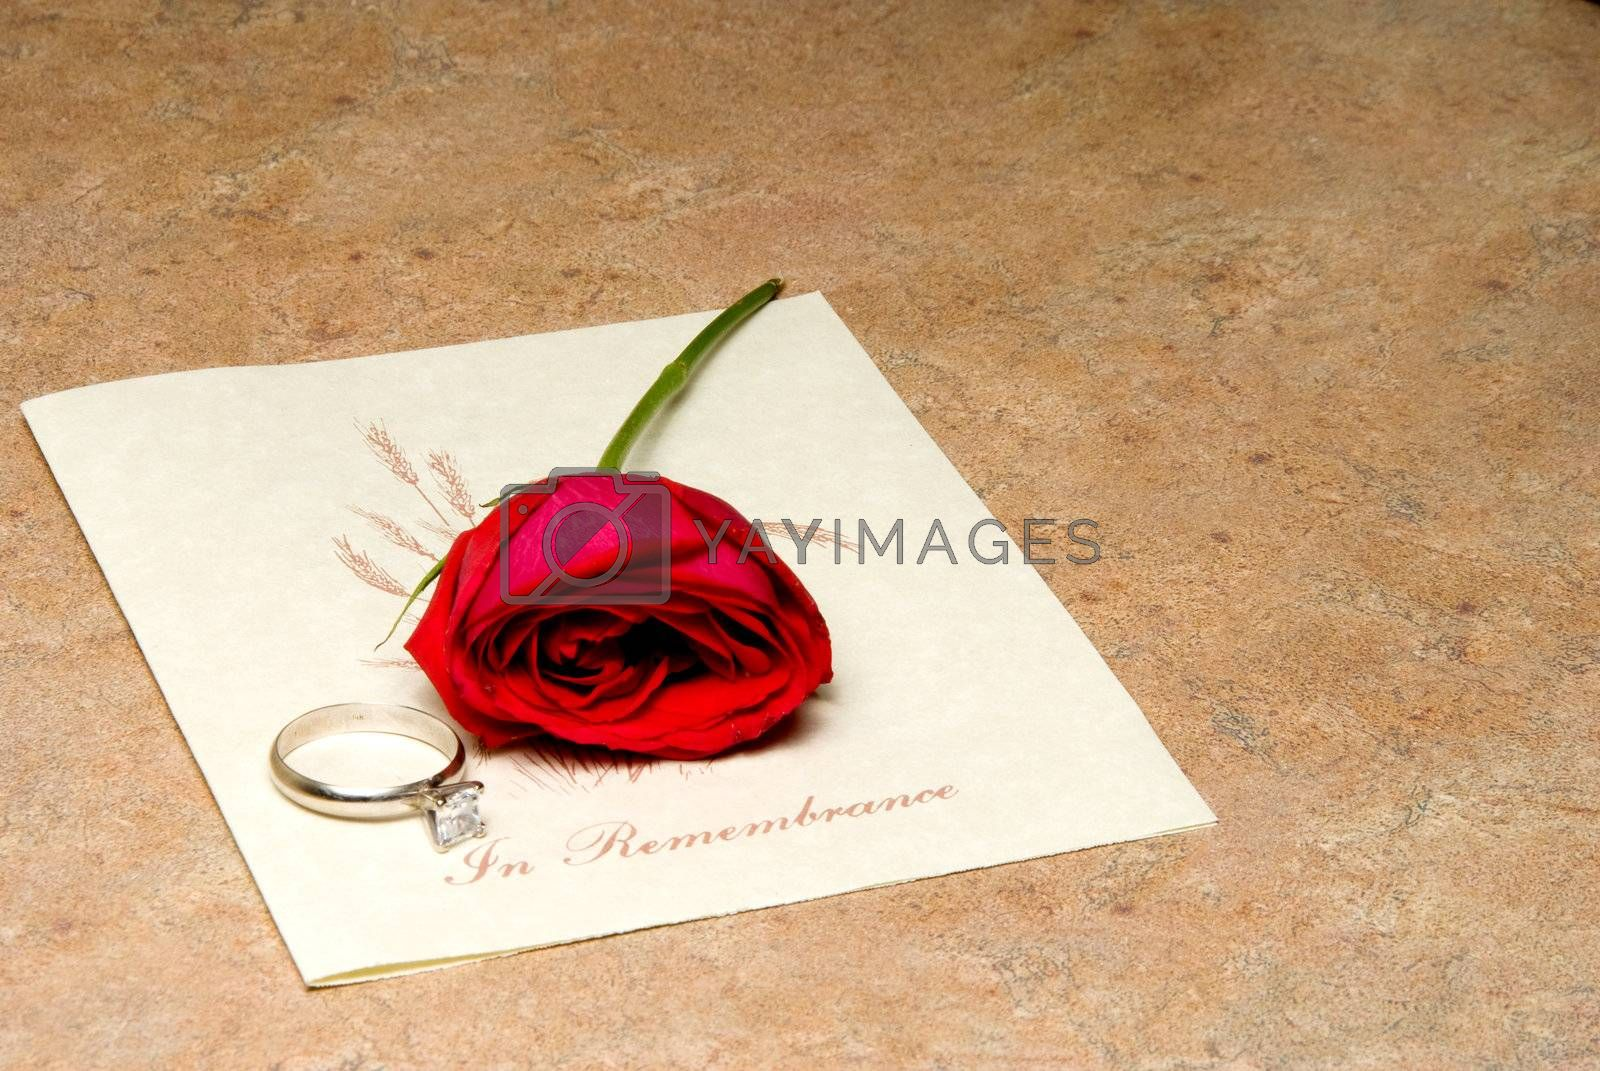 A funeral program with a rose and wedding ring.